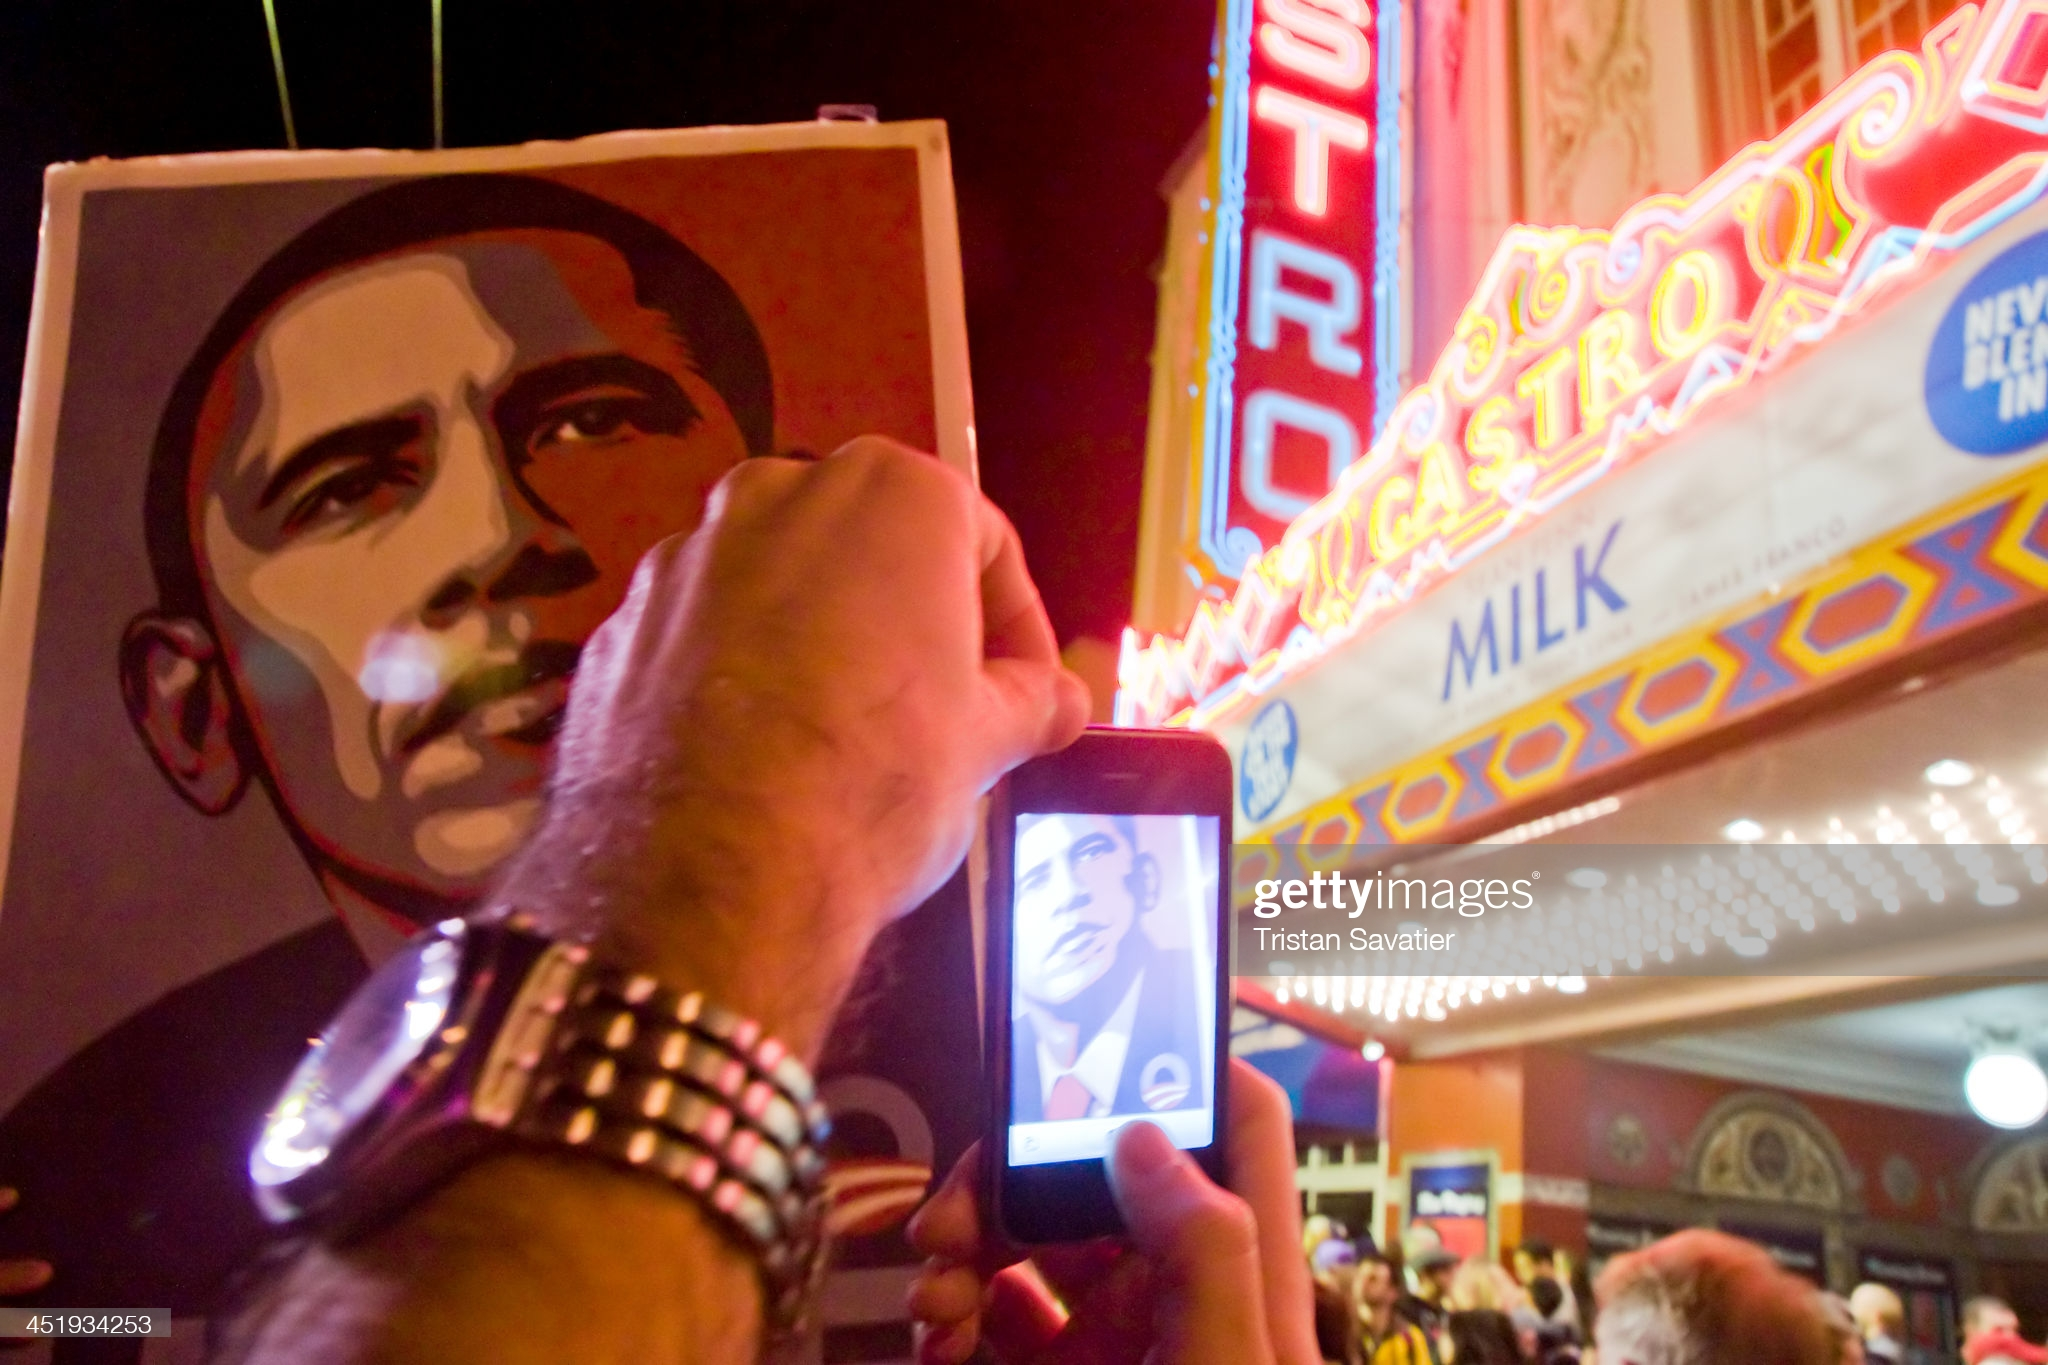 [UNVERIFIED CONTENT] Large Obama poster on picket sign in street crowd celebrating Obama's election in front of the historical Castro theater in San Francisco's Castro district.A spontaneous street party erupted on Castro street on election night.Other keywords: large group of people, crowd, street party, spontaneous, Americans, President Obama's election night, outdoors, celebration, celebrating, joy, happiness, exuberance, demonstration, politics, human interest, democracy, poster, cellphone, iphone, taking photos, photographer, mobile device, mobile phone, landmark, tourist destination, travel destination, night.